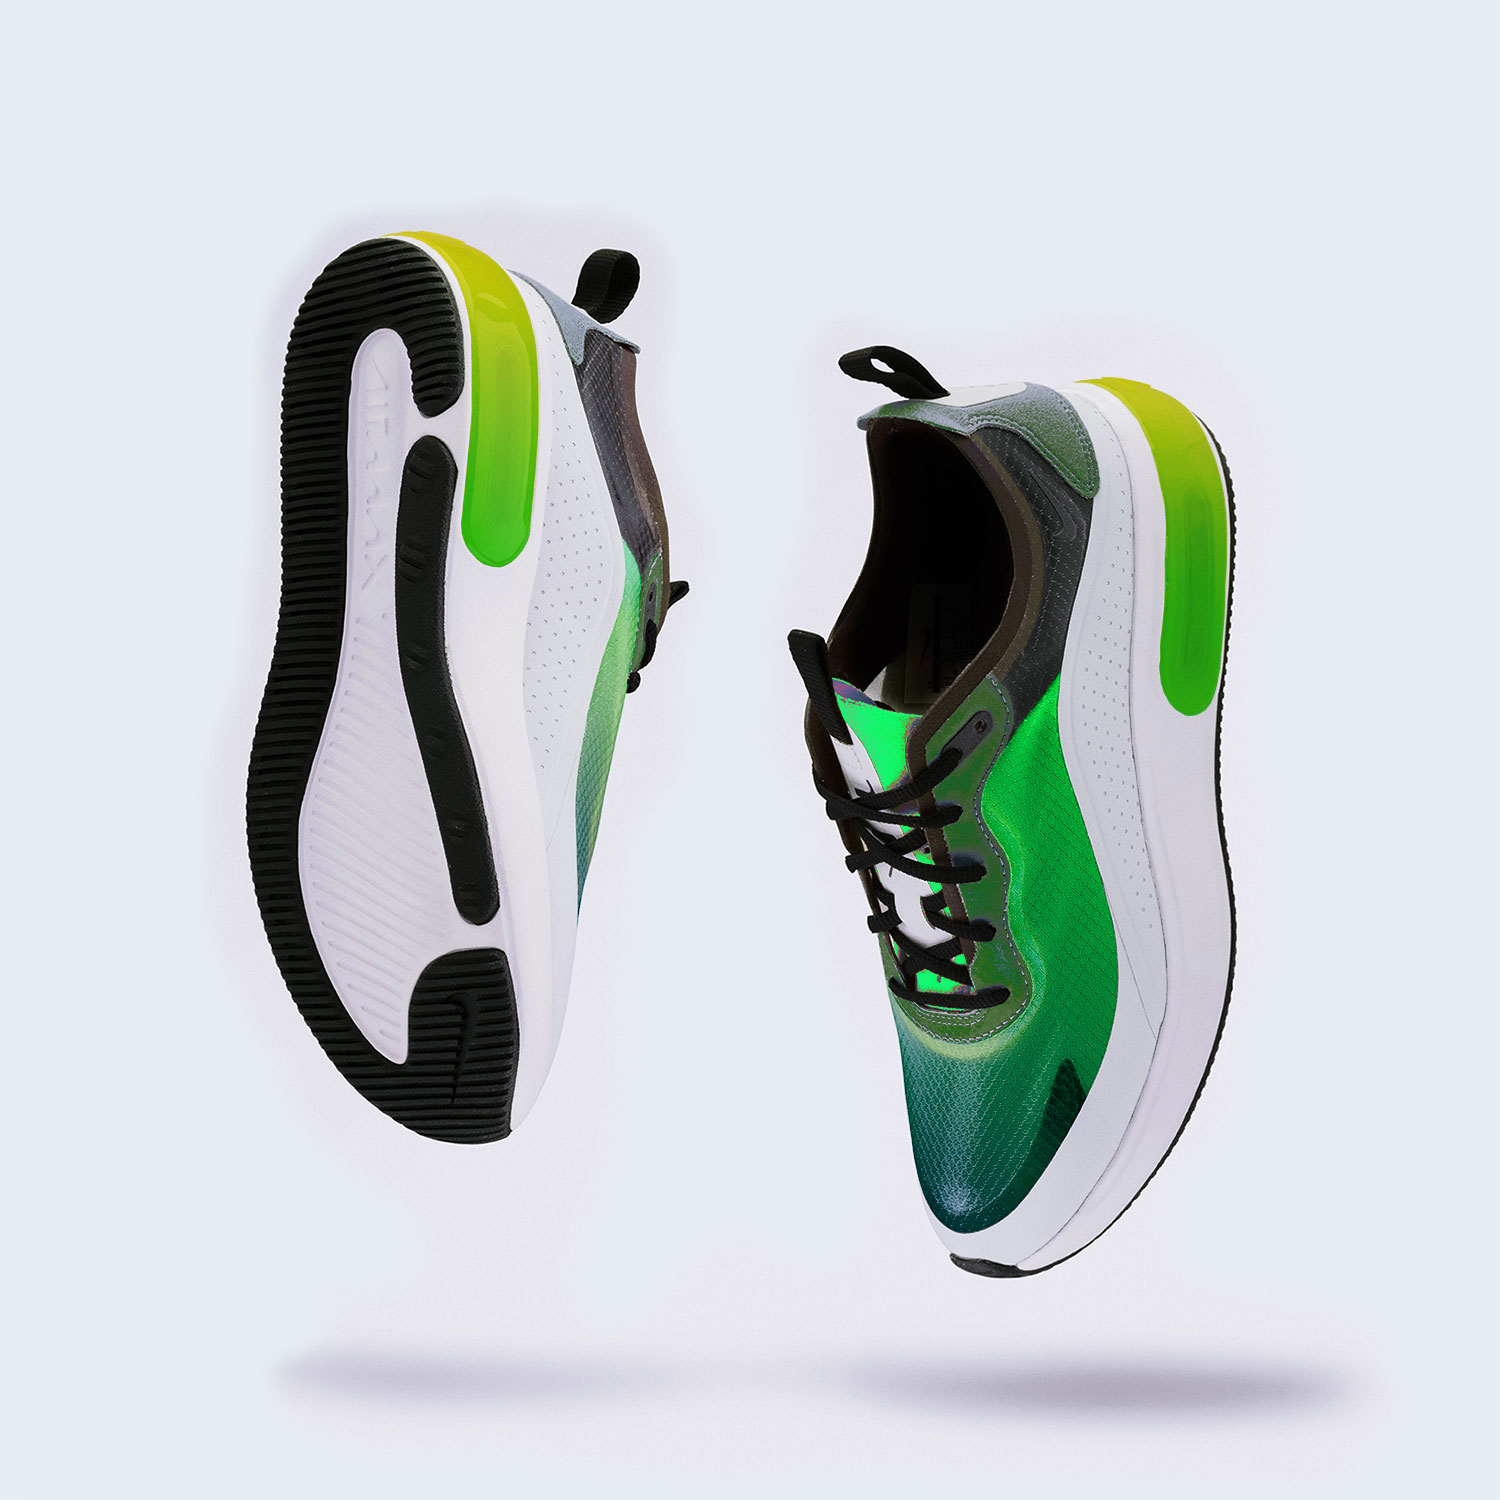 DNK Shoes